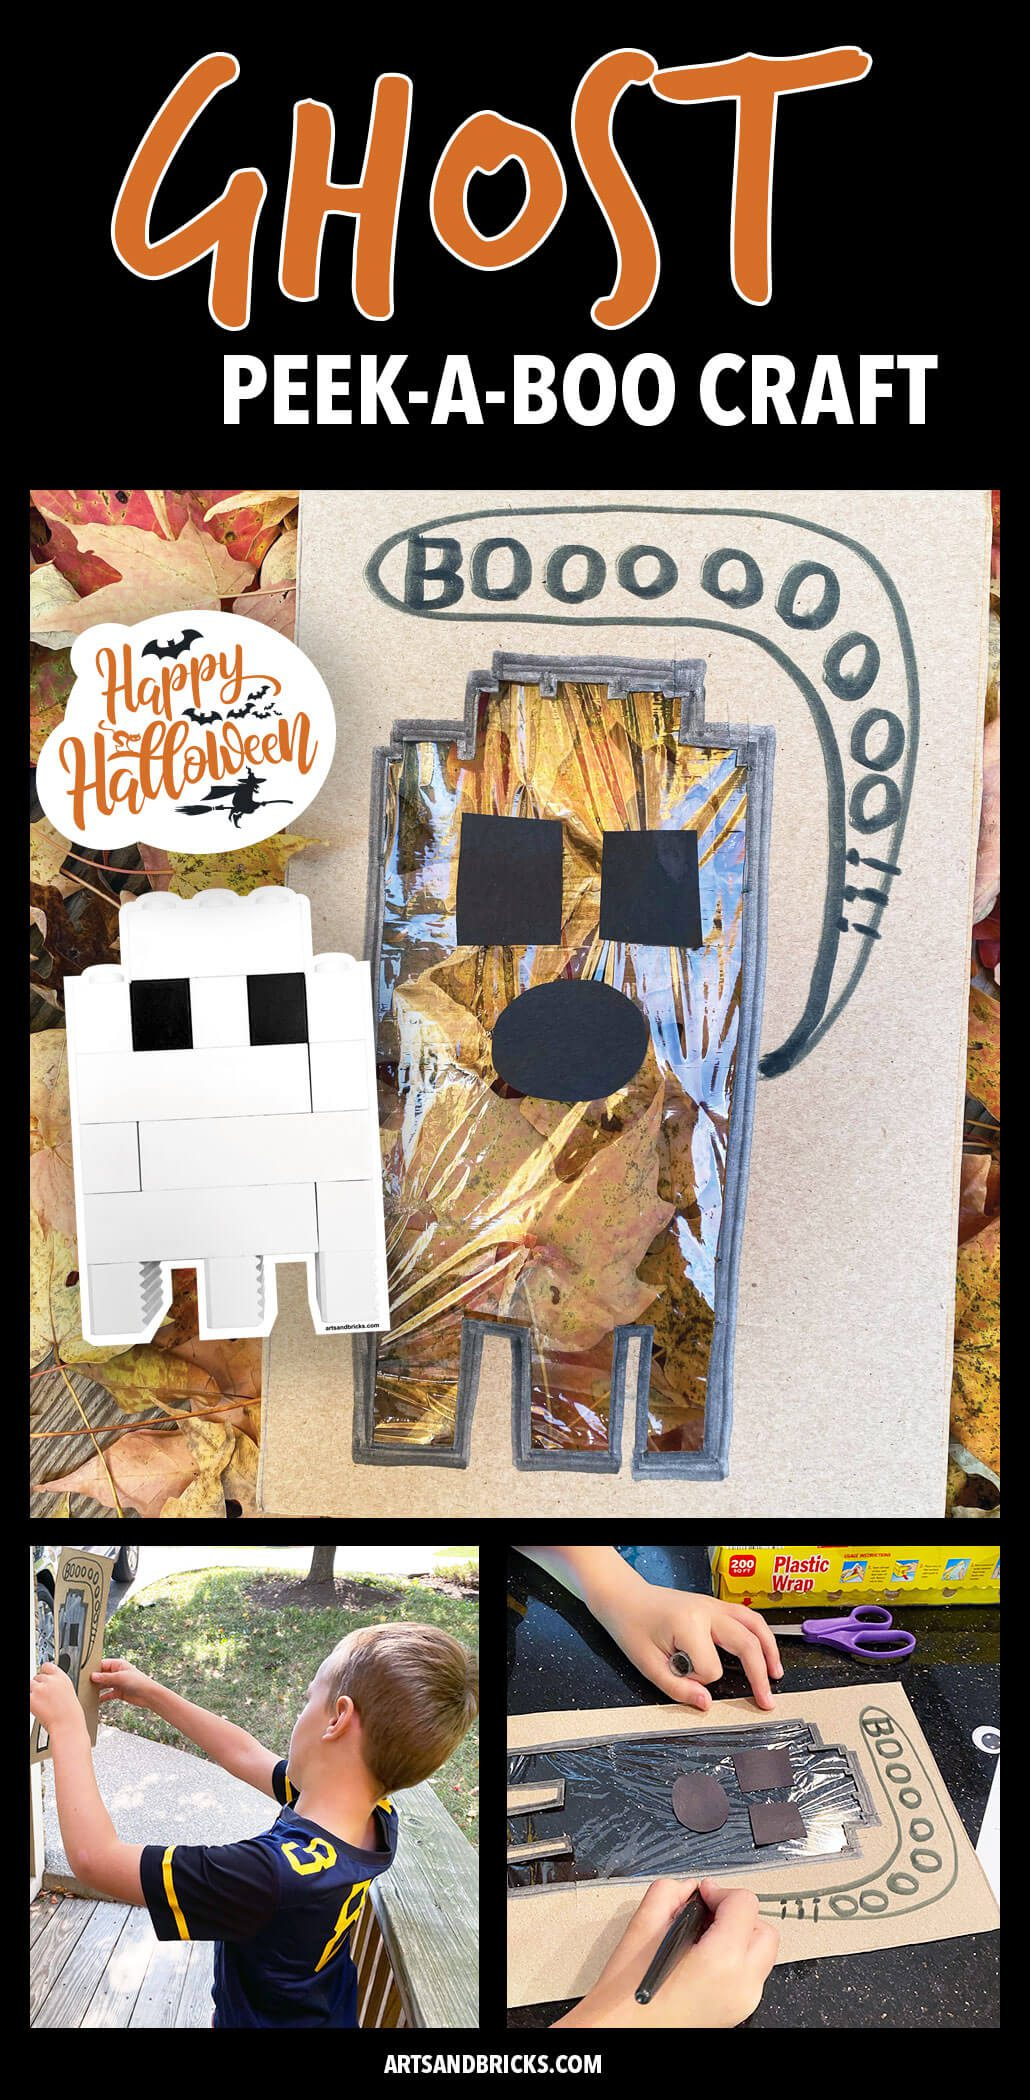 Our Ghost Peek-A-Boo Cardboard Craft was especially created for a LEGO lovin' eight-year-old. We recycled our cereal boxes for the cardboard and used construction paper and plastic wrap. Our ghost is a Lego brick ghost! This craft encourages kids to explore nature and the vast amount of colors and textures that surround them. Bonus for older kids: it starts to teach how to frame a composition. #ghost #craft #forkids #autumn #halloween #lego